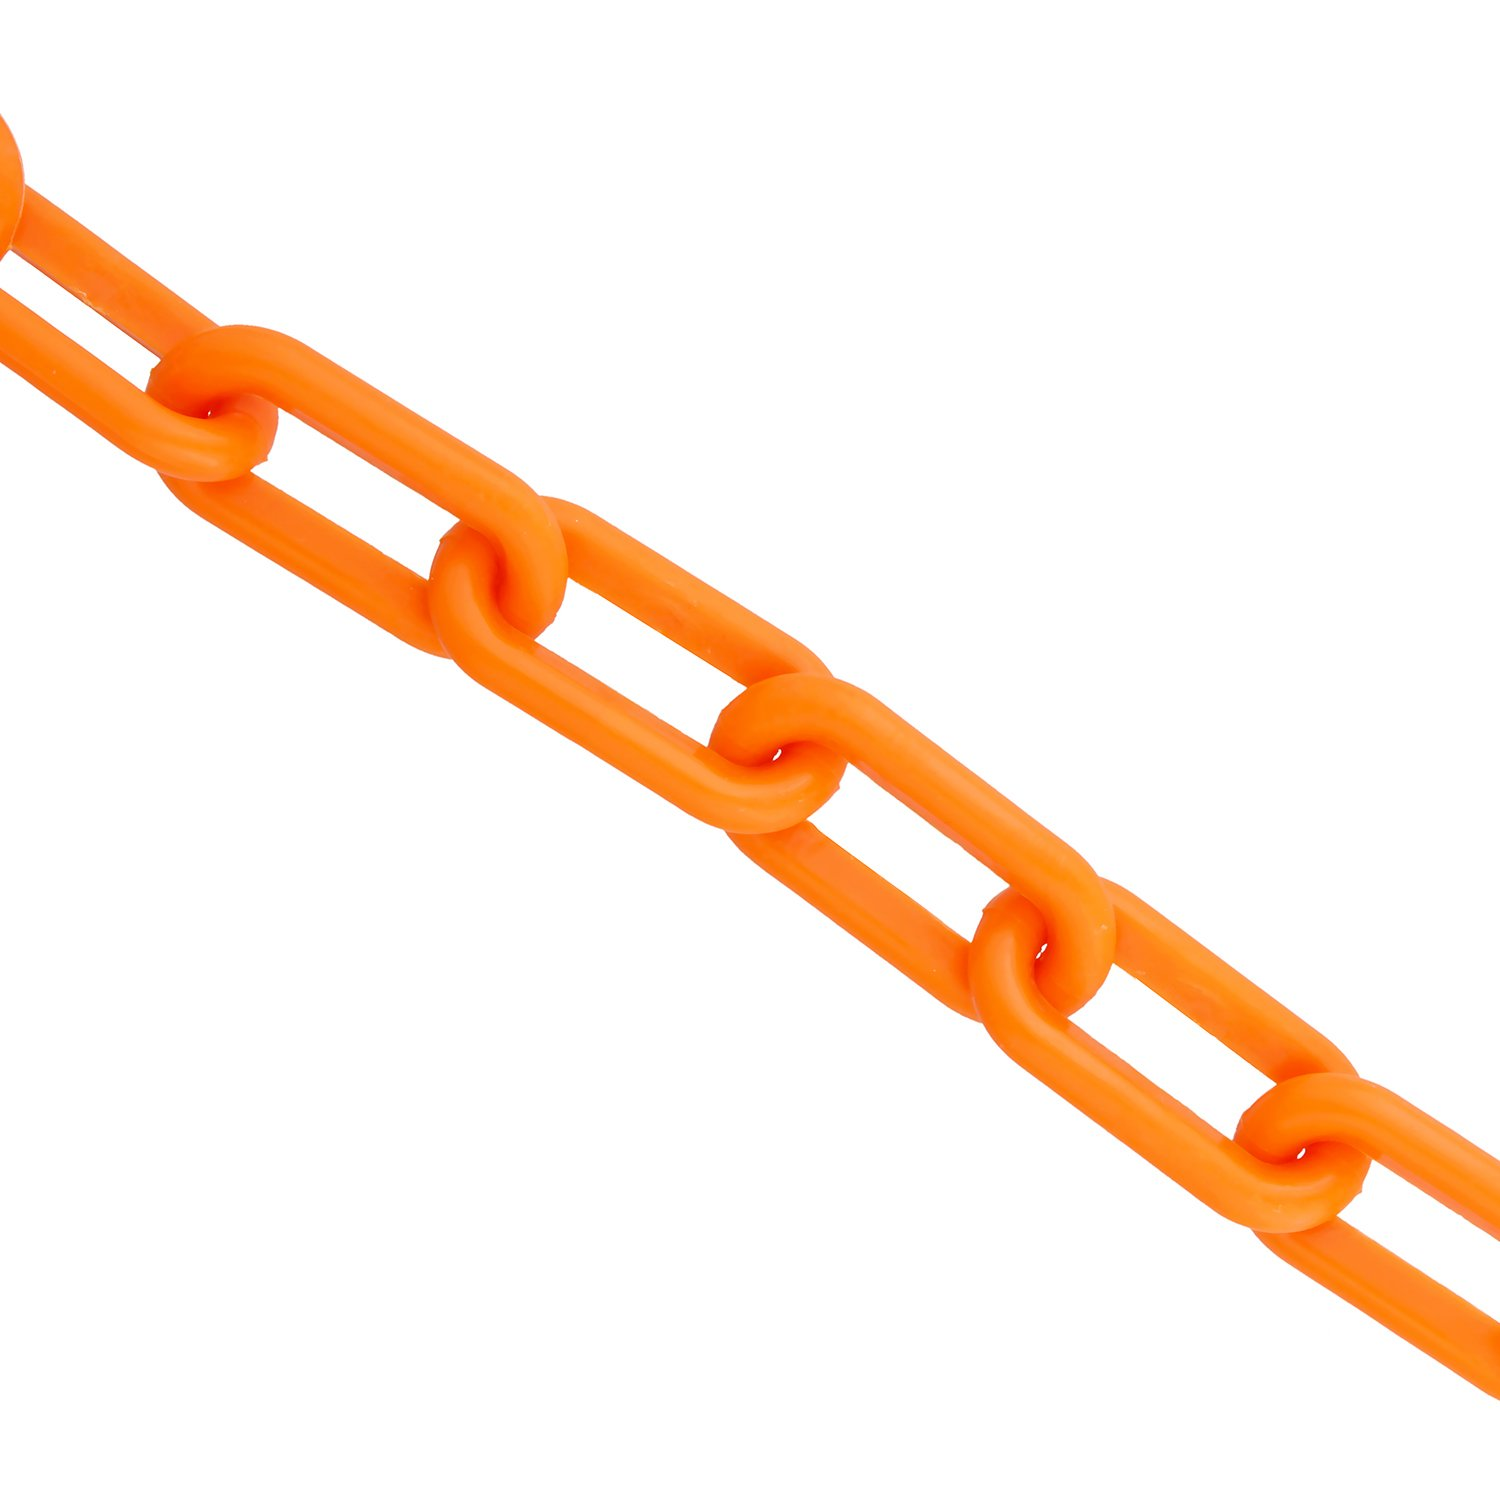 Bob's | Plastic Chain Links in Orange – 125' Feet Long – Orange Chain for Crowd Control, Halloween Chains, Prop Chains